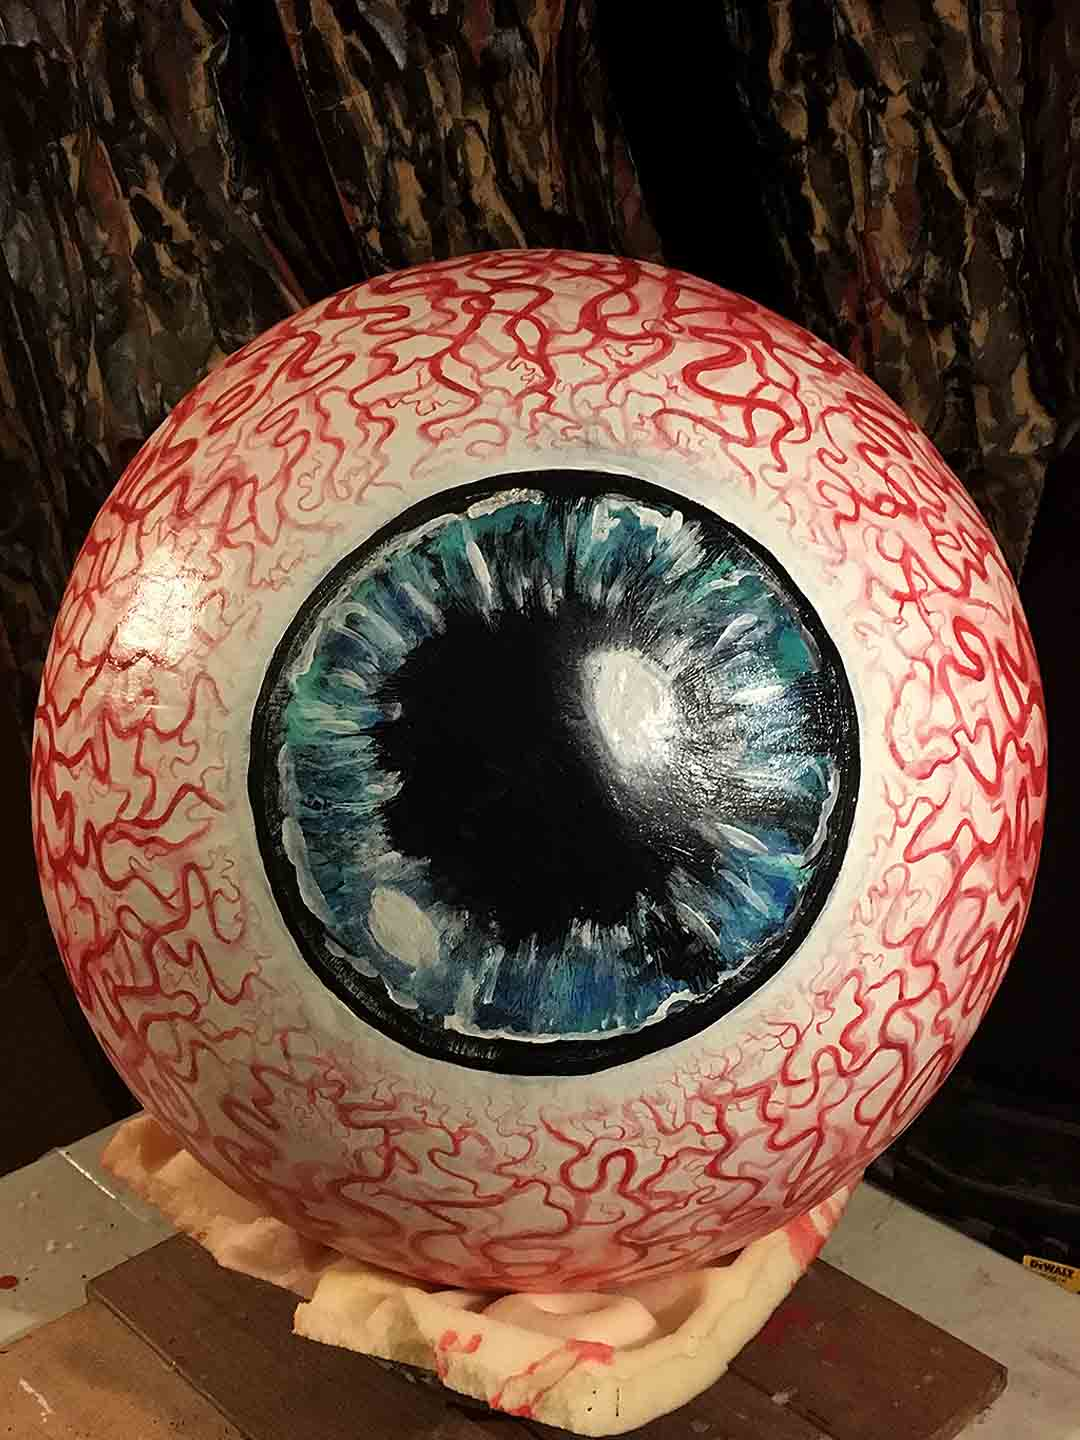 eye ball prop process22 web.jpg